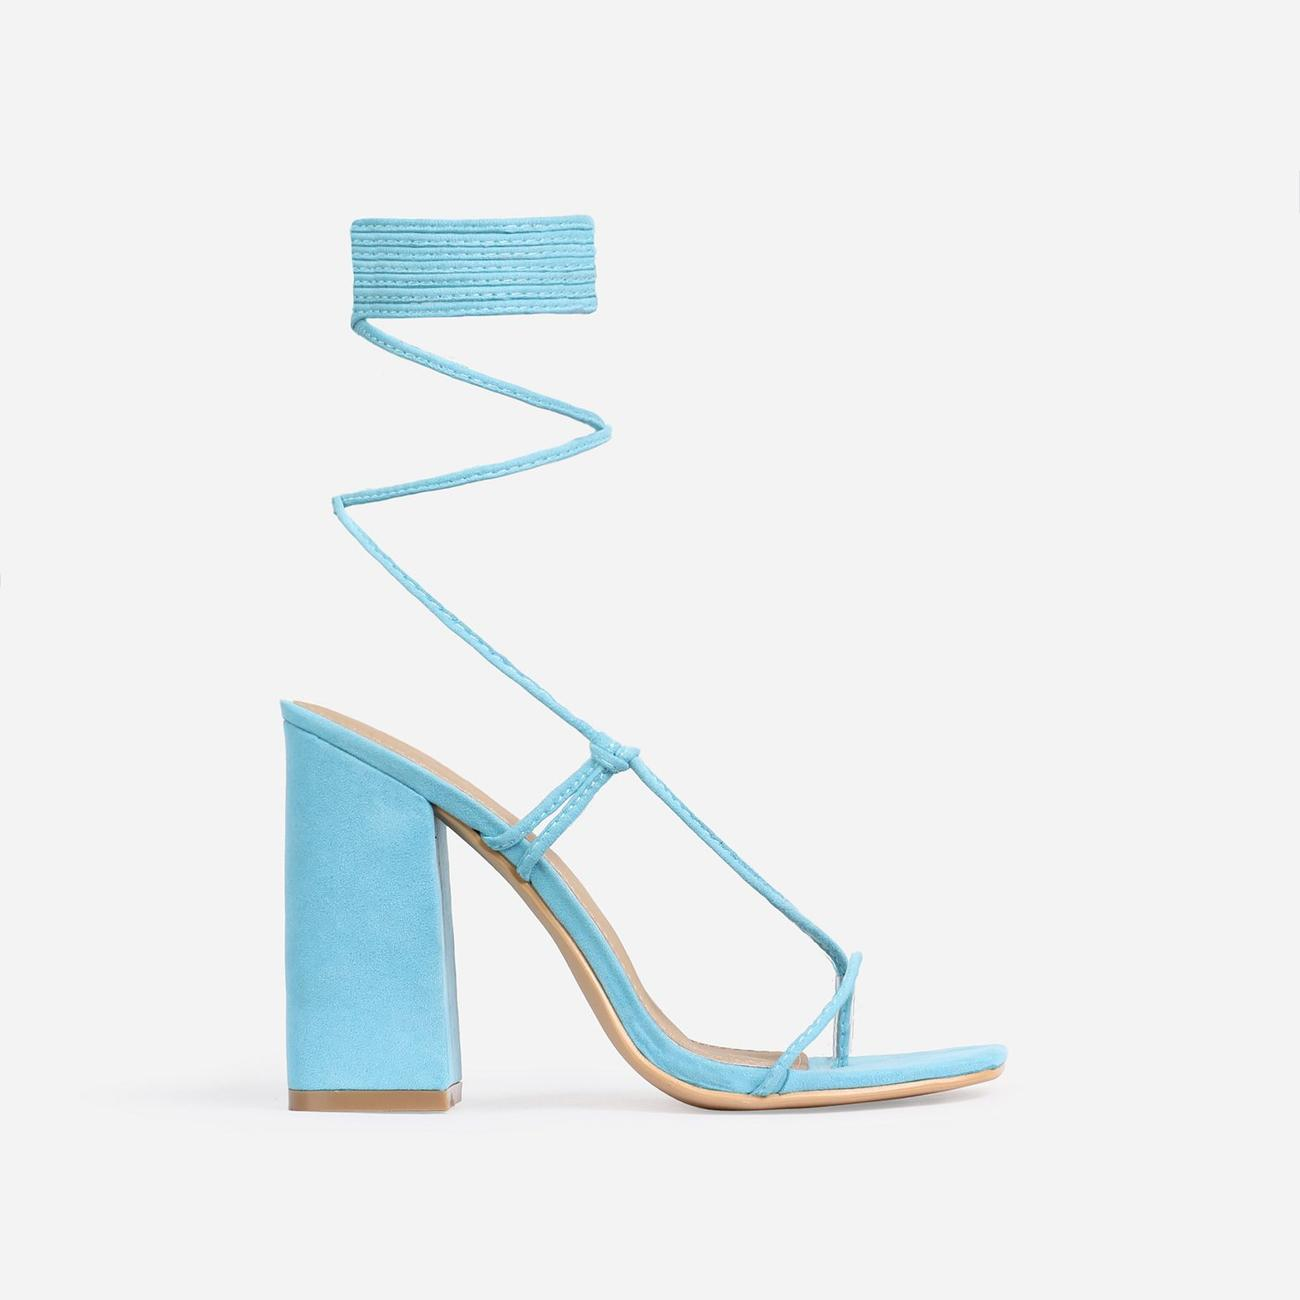 Honey Square Toe Lace Up Block Heel In Blue Faux Suede Image 1